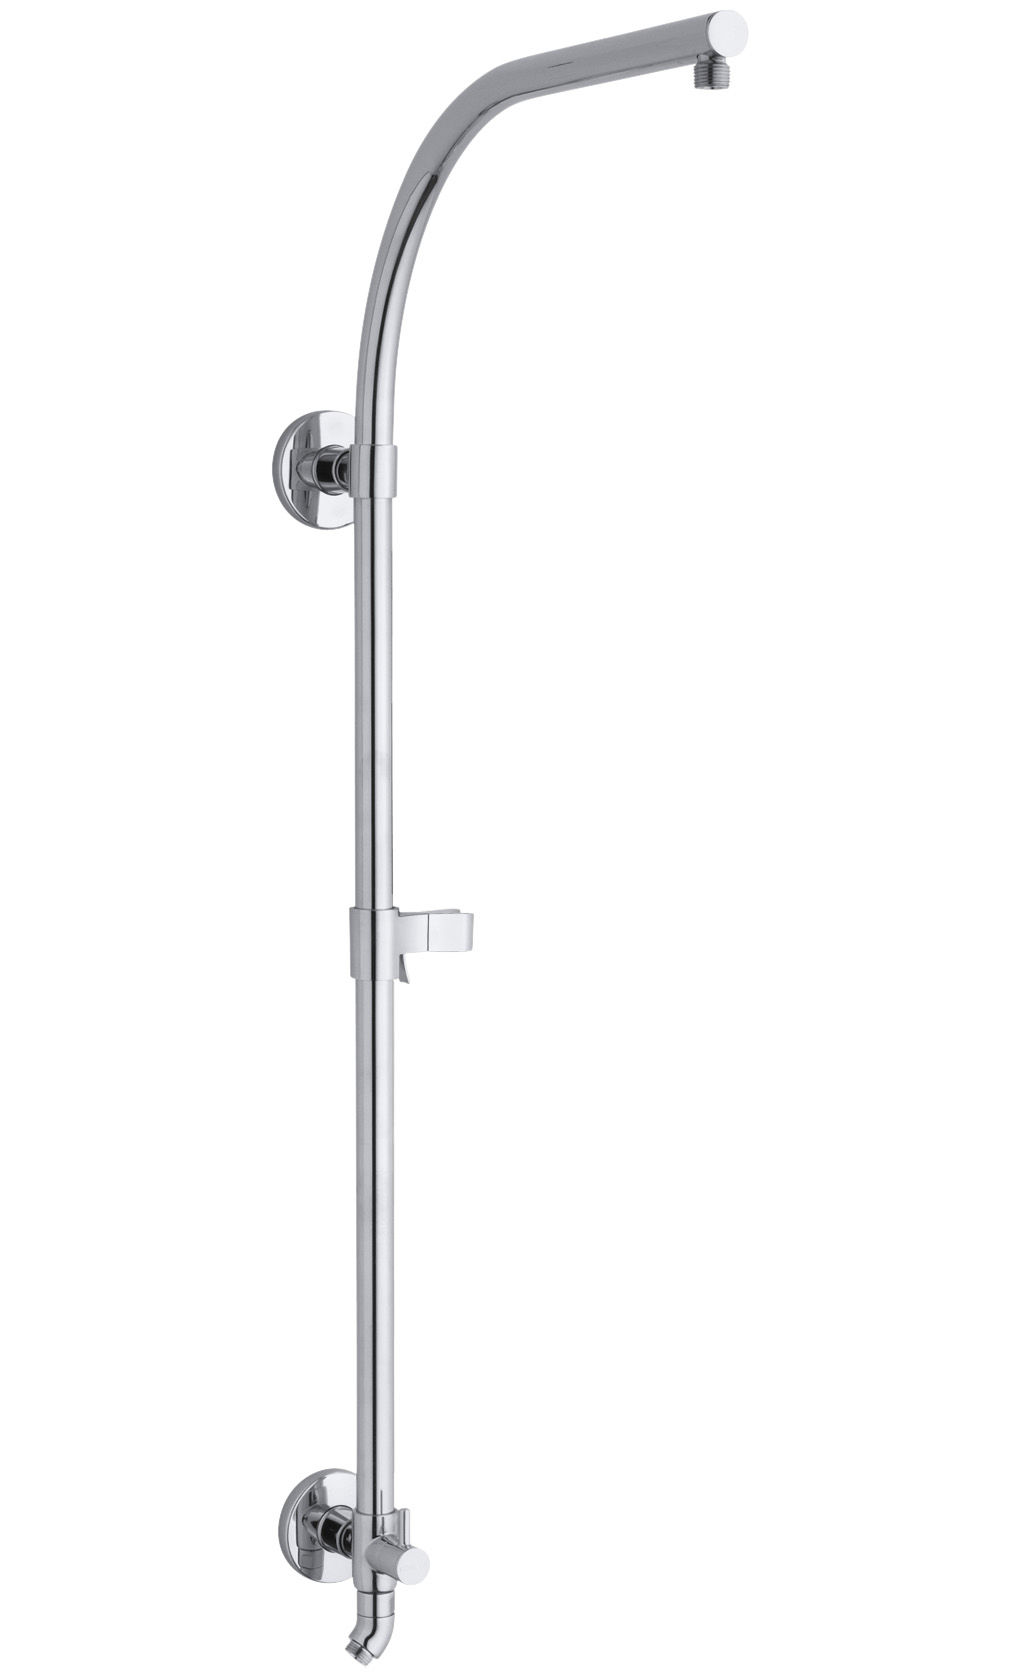 Kohler Hydrorail K 13695 14788 Cp Package Polished Chrome Shift Active Exposed Bath And Shower Faucet With Single Function Head Multi Hand